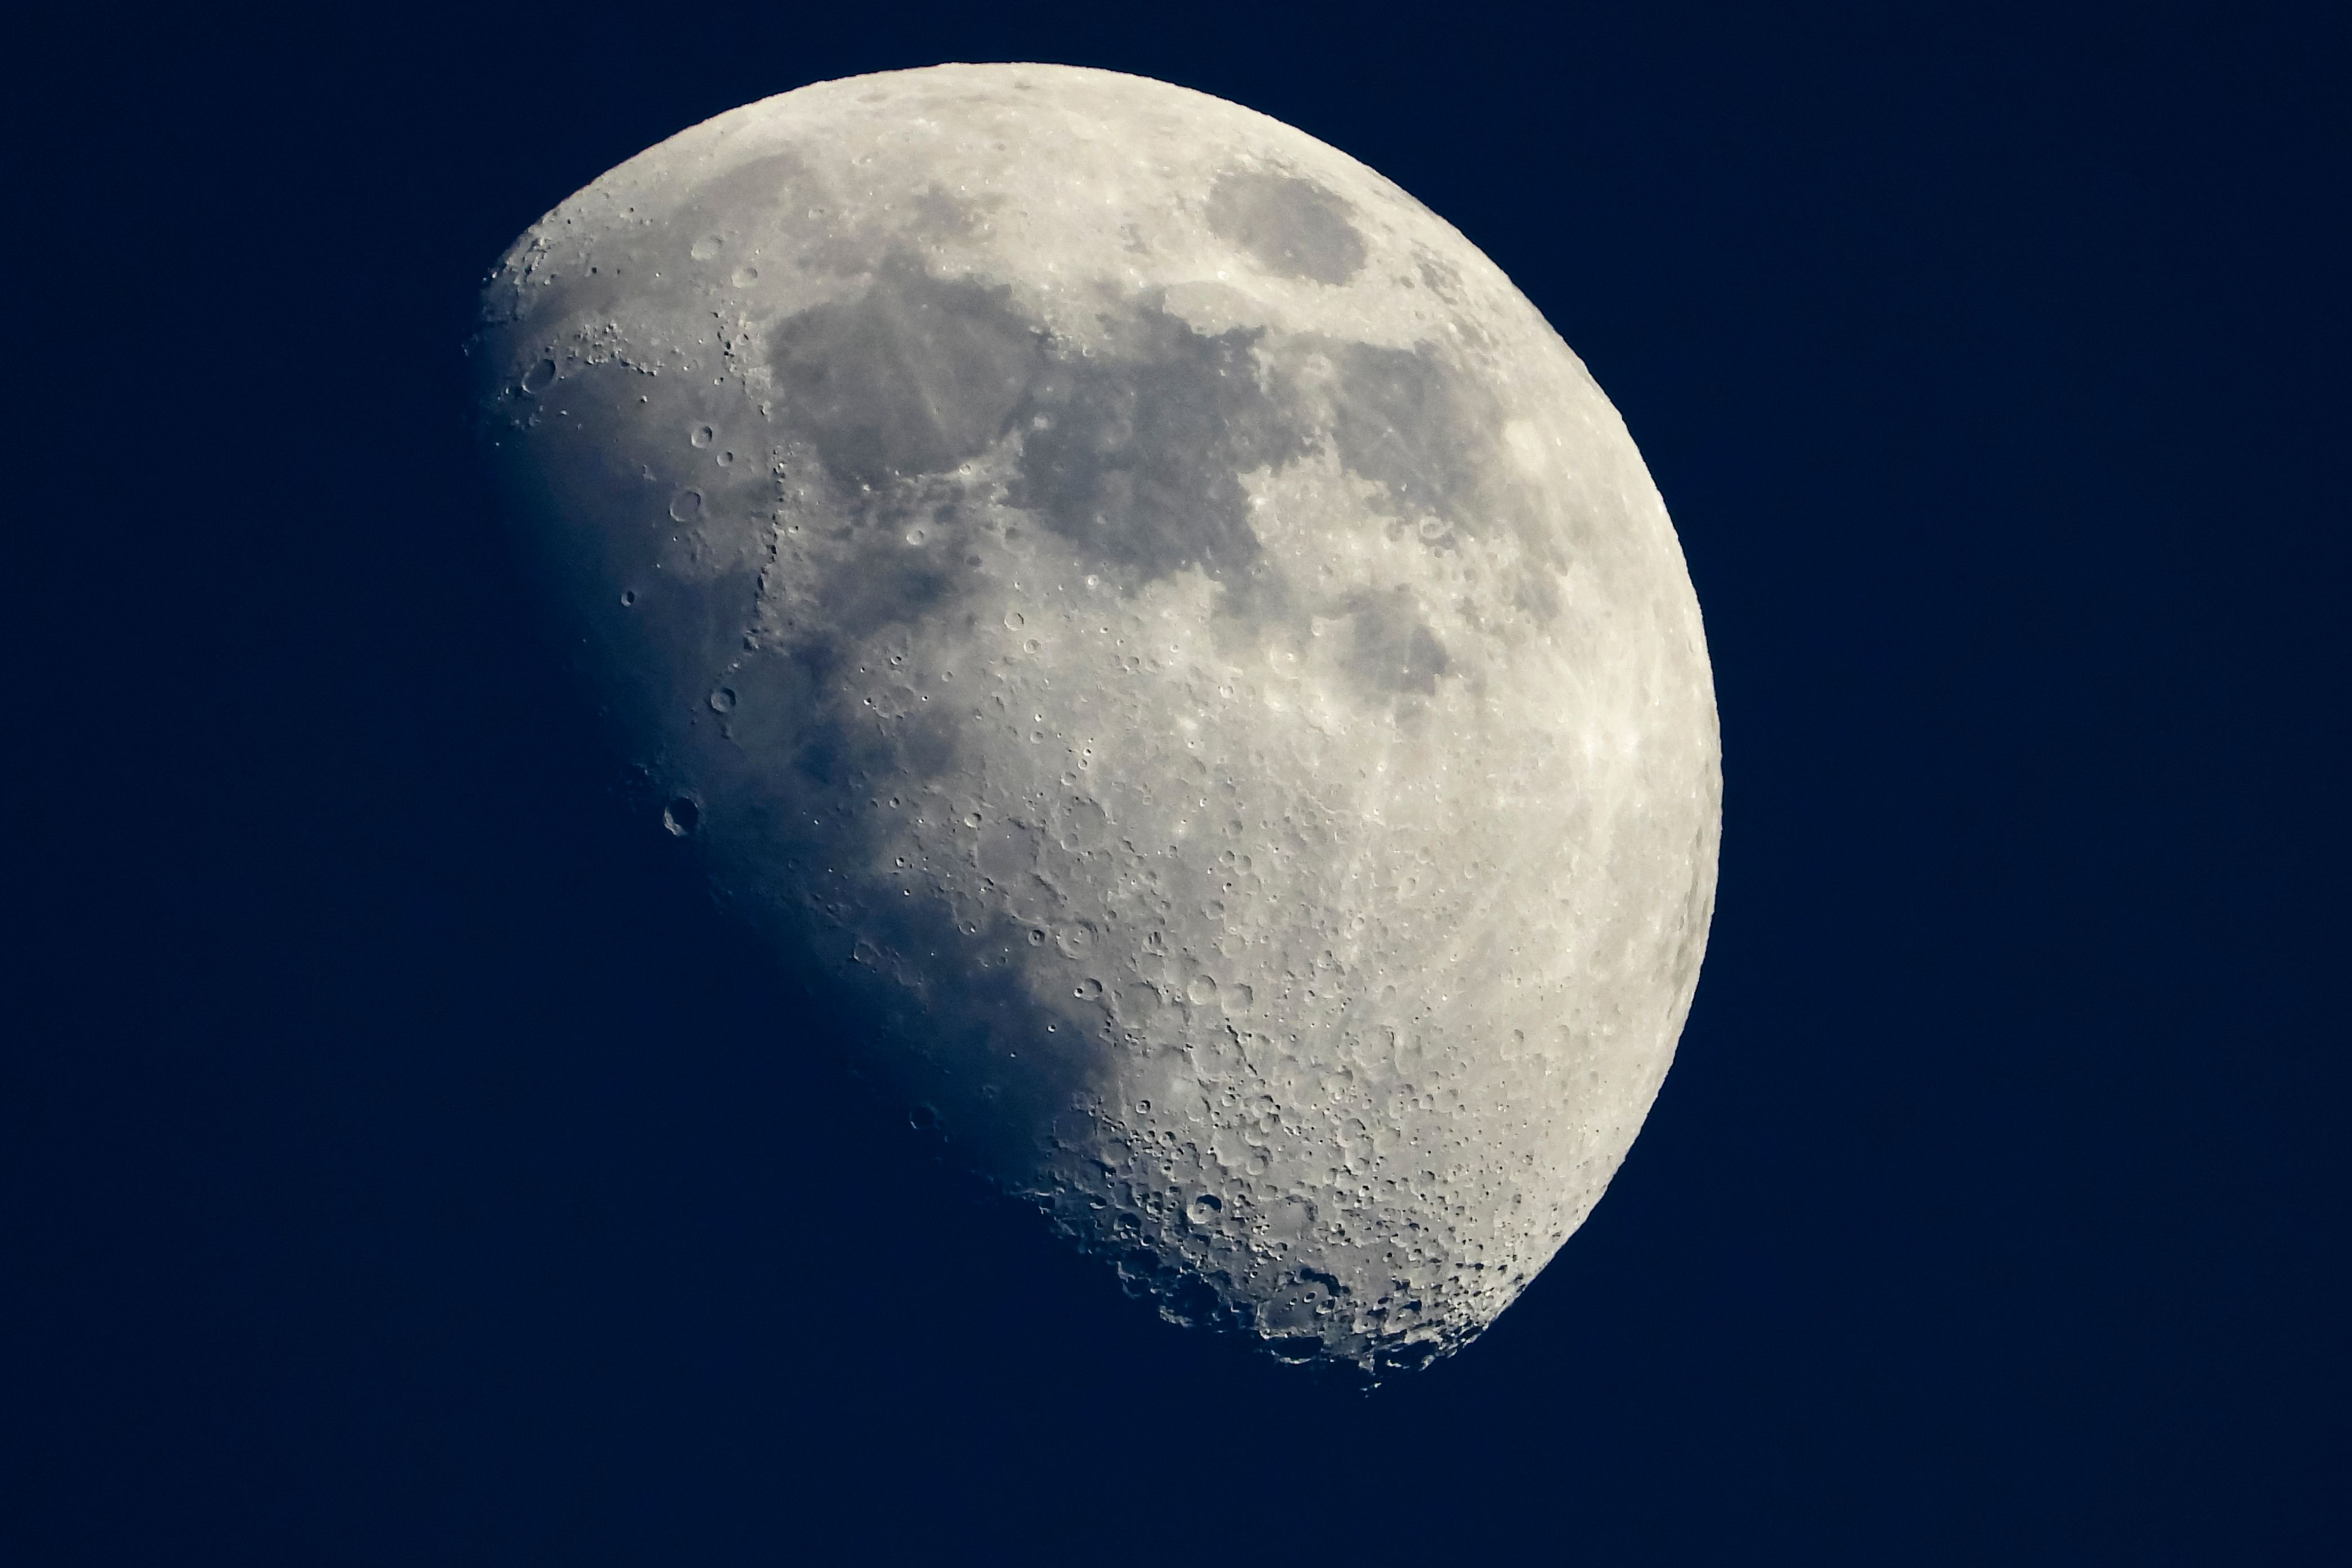 China's mission to the Moon is due to launch in the next few days